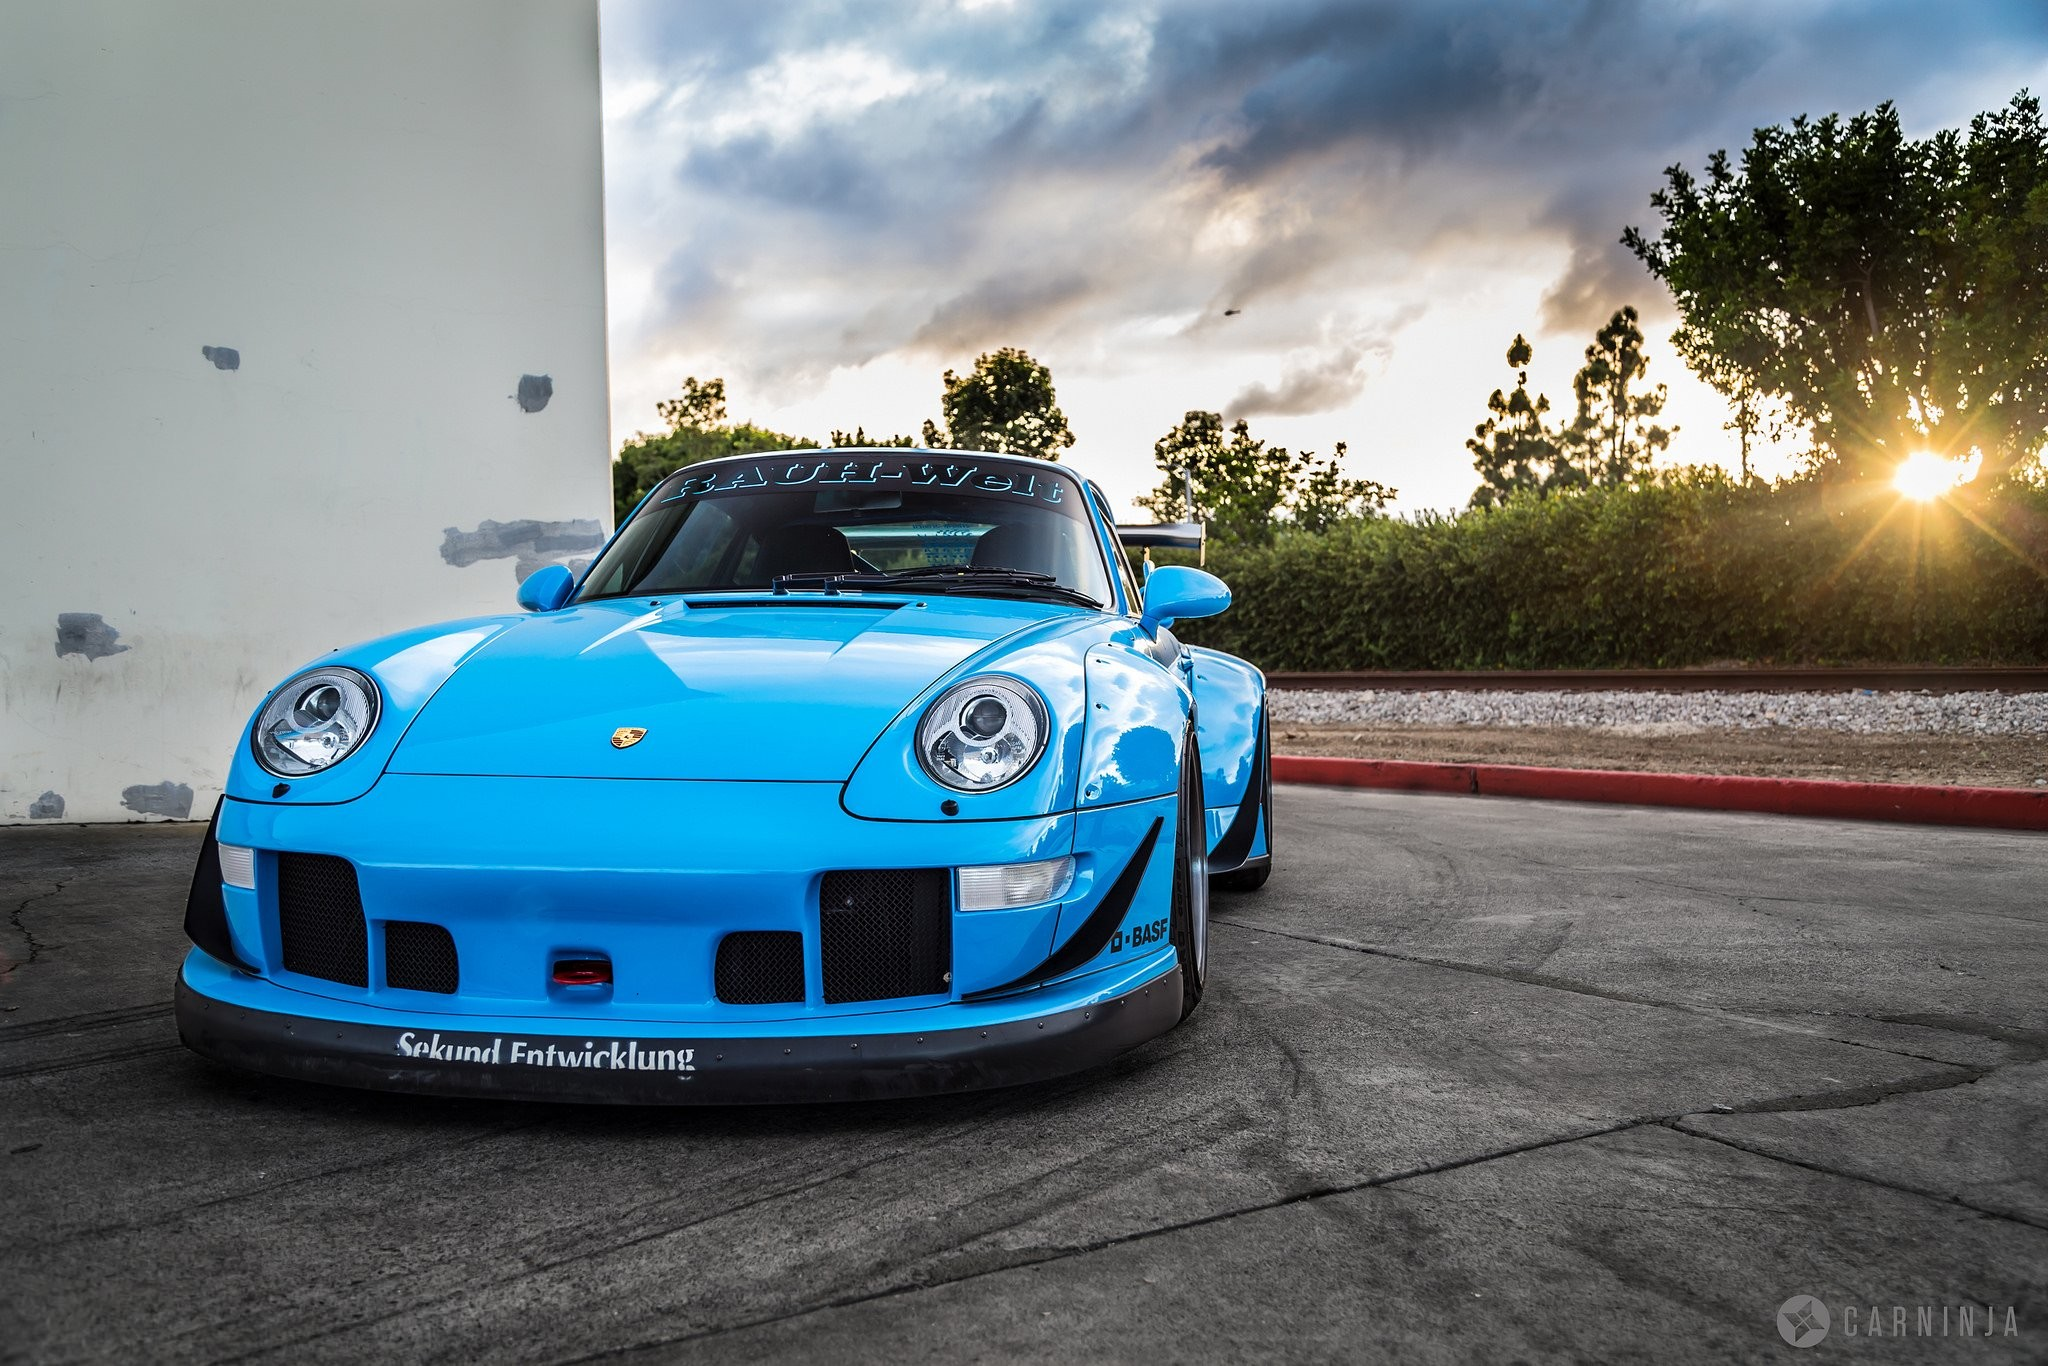 Targa Rwb Walpaper: Rwb Wallpapers ·① WallpaperTag